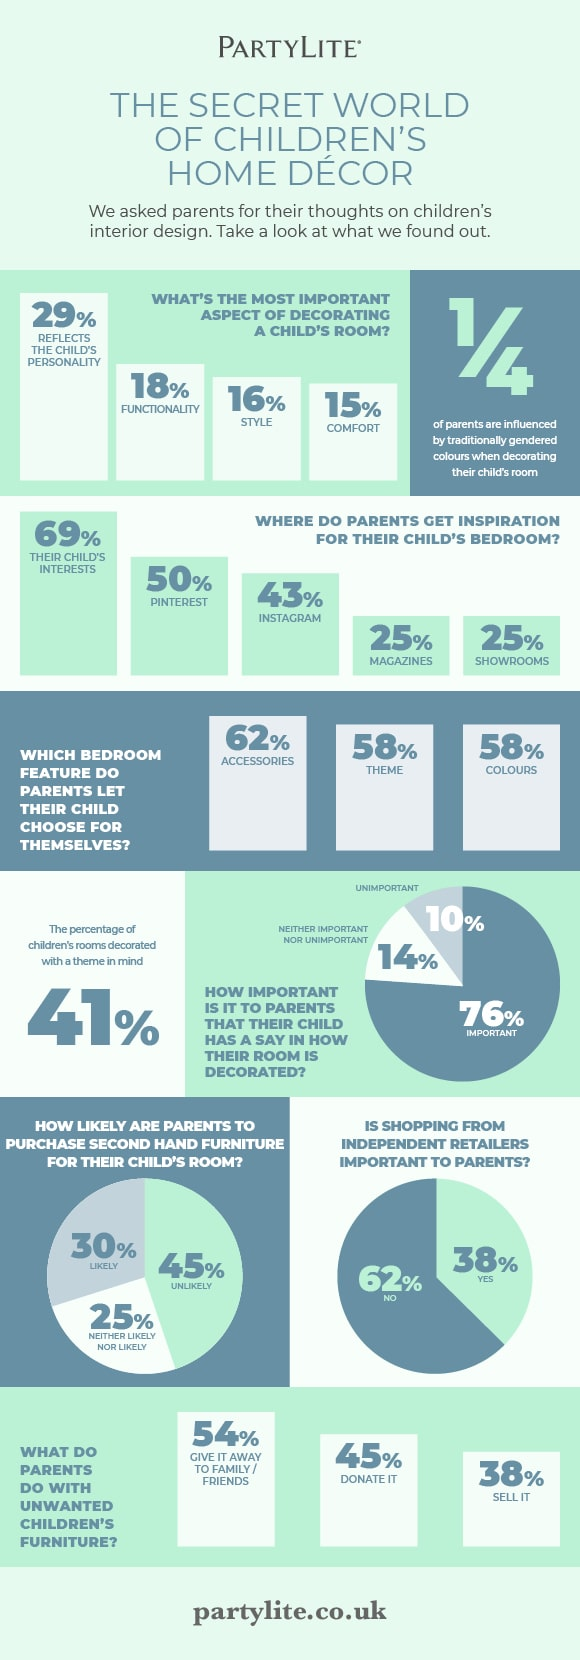 PartyLite infographic showing results of a parents survey on how they decorate their children's bedrooms